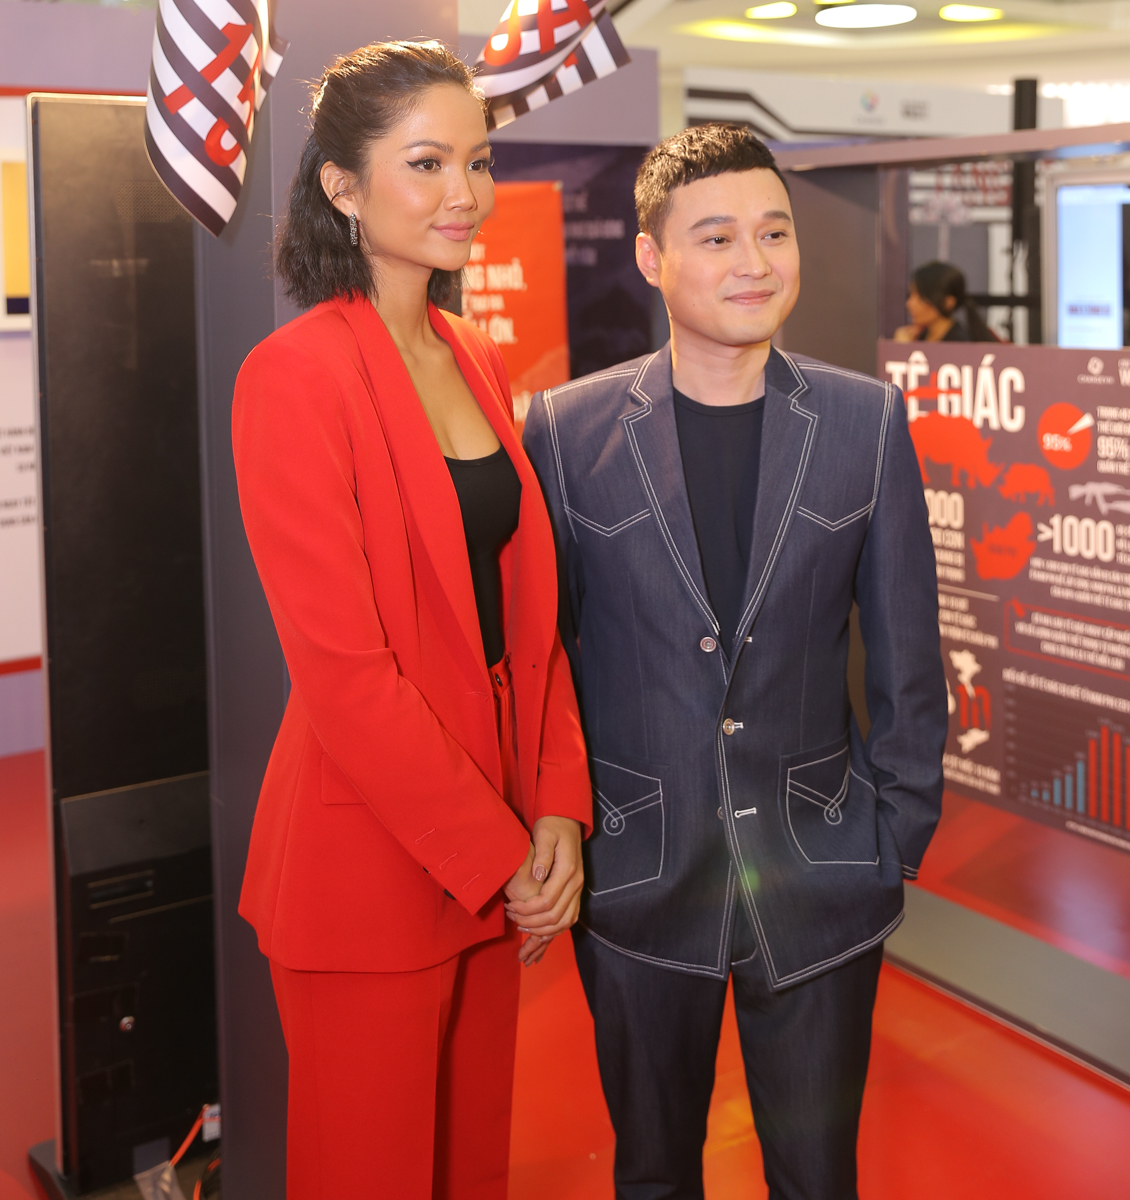 Singer Quang Vinh (R) and Miss Universe Vietnam 2017 H'Hen Nie attend an event of the 'Buy 1 Get 15' campaign against illegal wildlife trafficking in Ho Chi Minh City on December 30, 2019. Photo: CHANGE